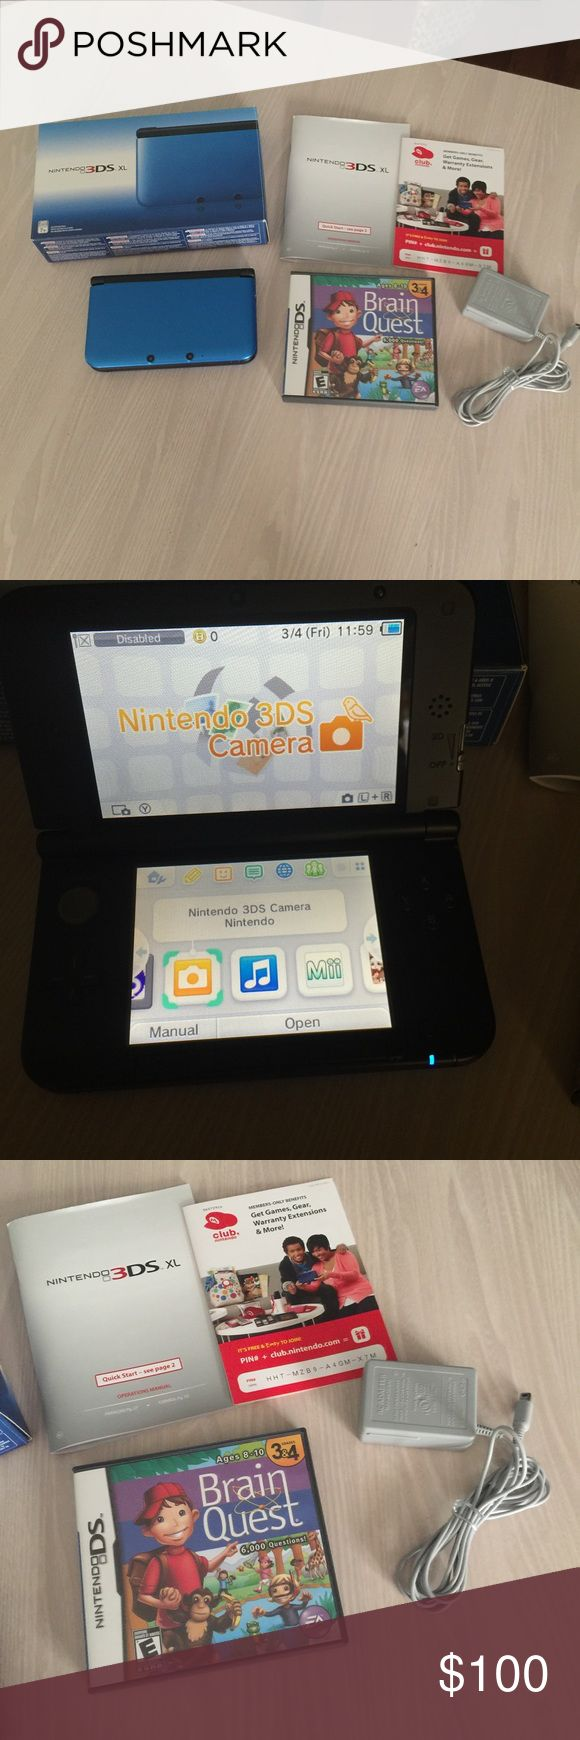 Nintendo 3ds XL Nintendo 3ds xl only played twice no scratches or anything like brand new charger and game was purchased separately from the game but is included with this sale Accessories